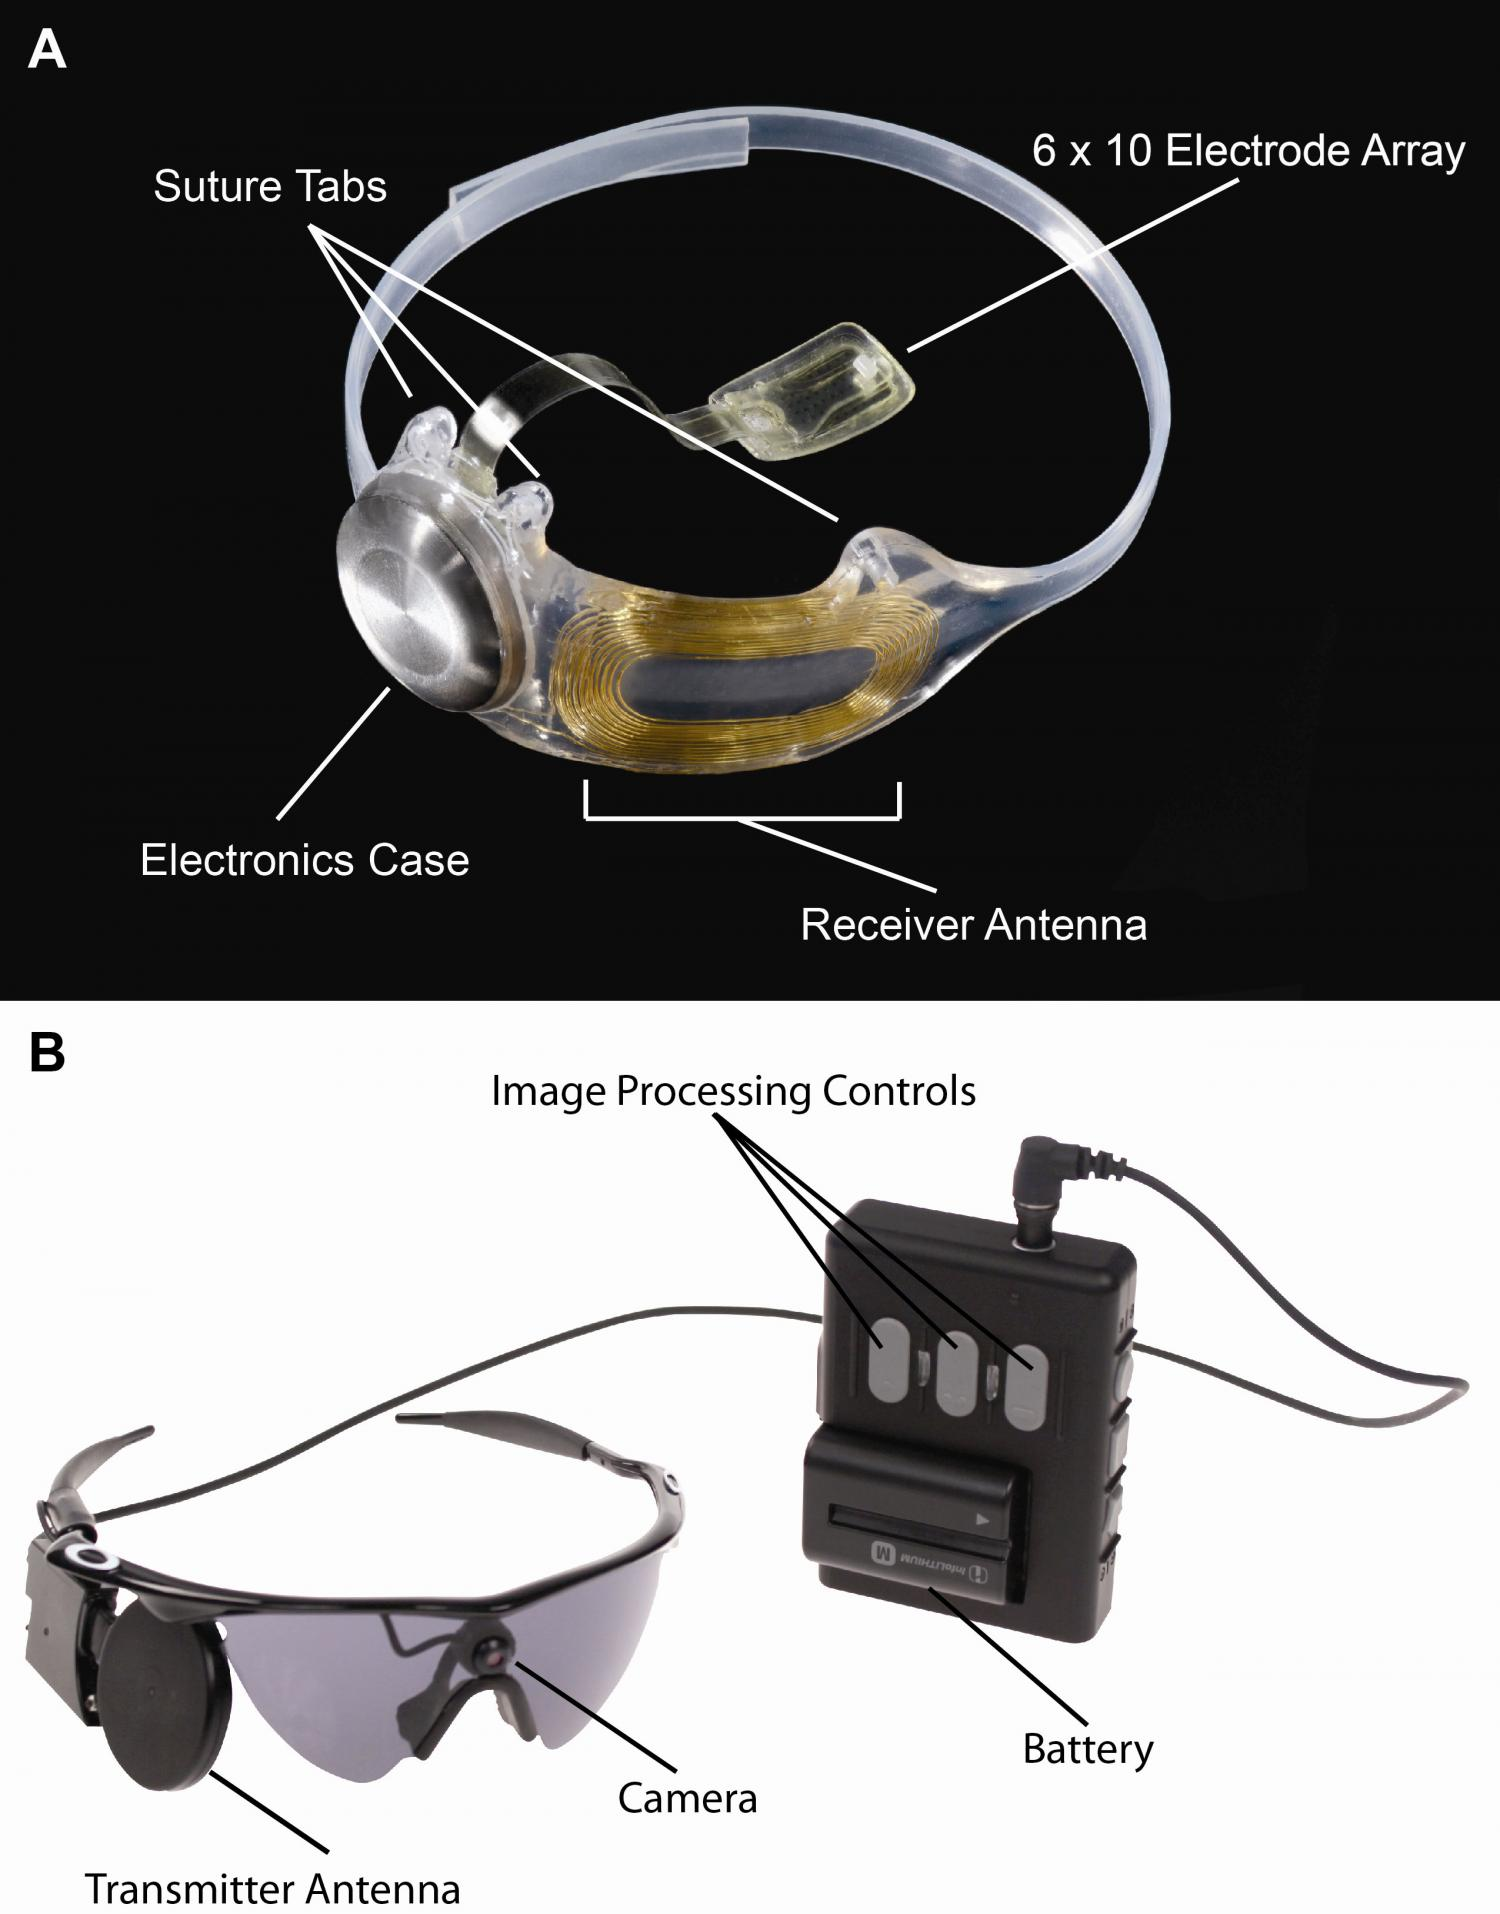 Bionic eye clinical trial results show longterm safety